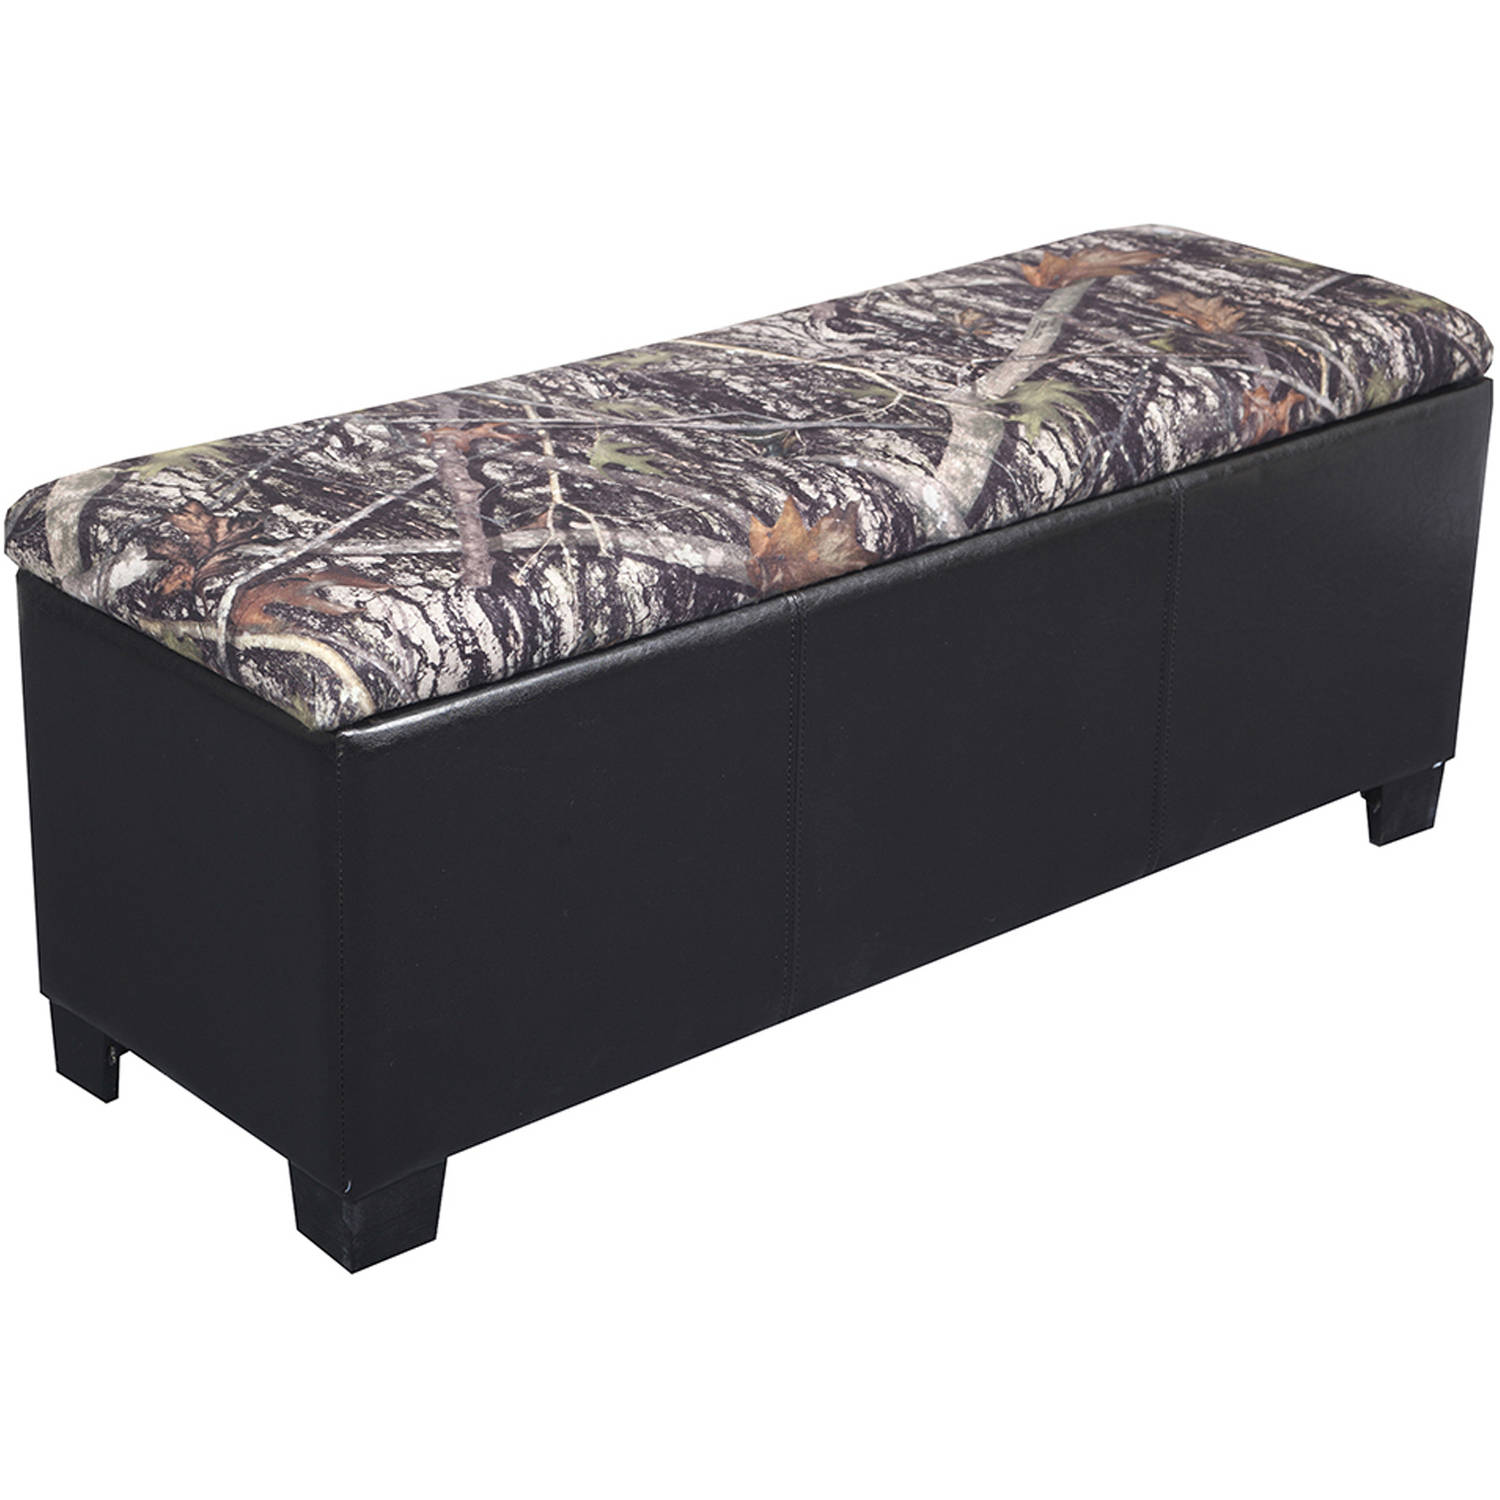 Camo Gun Concealment Bench, Dark Brown/Camouflage